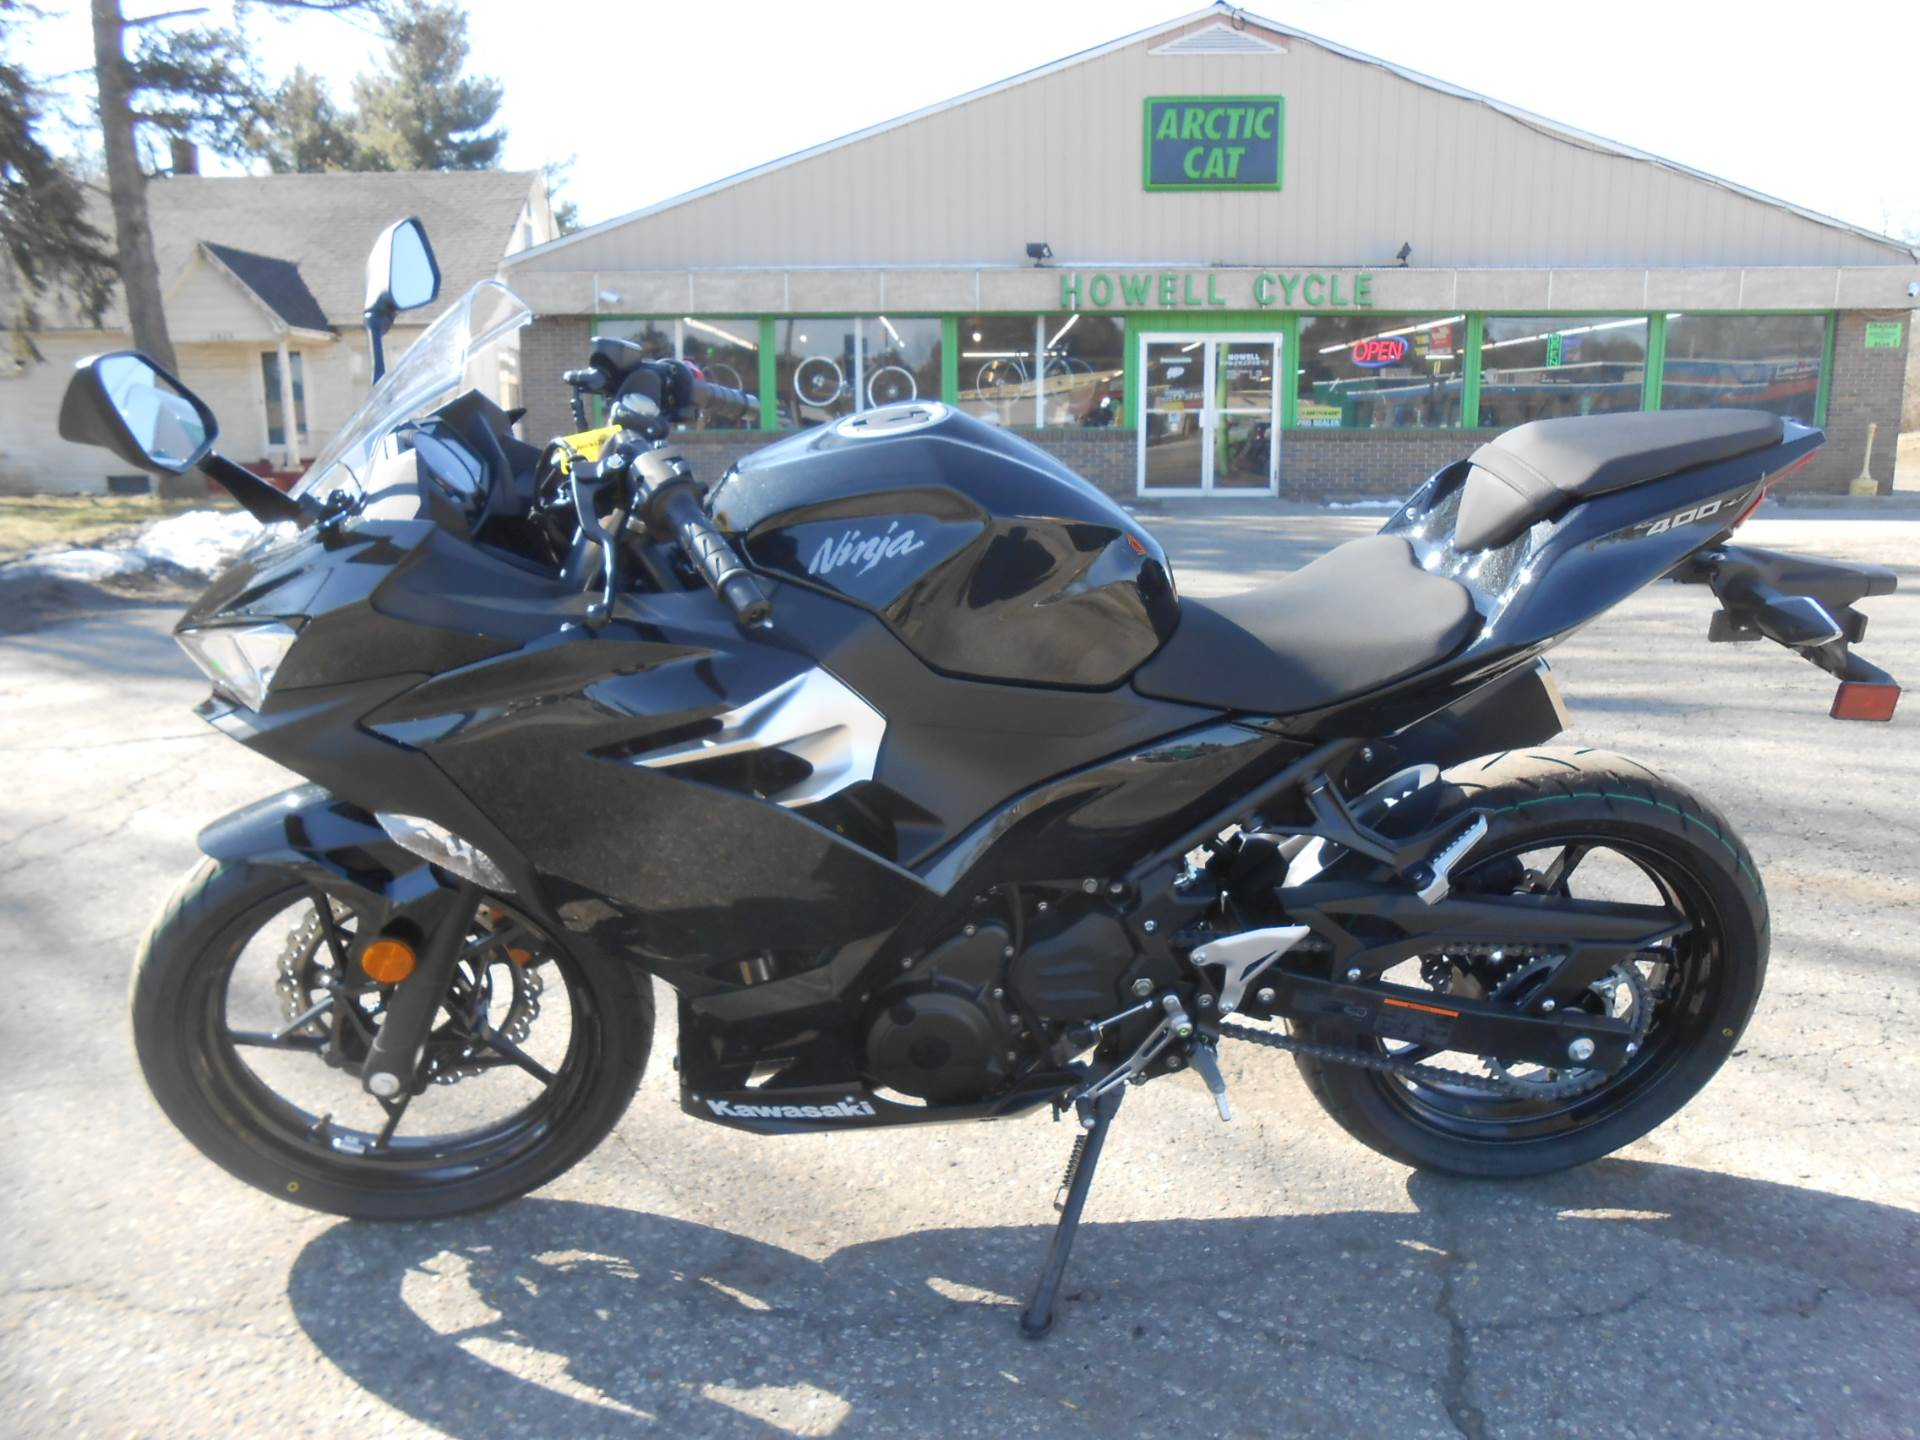 2018 Kawasaki Ninja 400 in Howell, Michigan - Photo 5